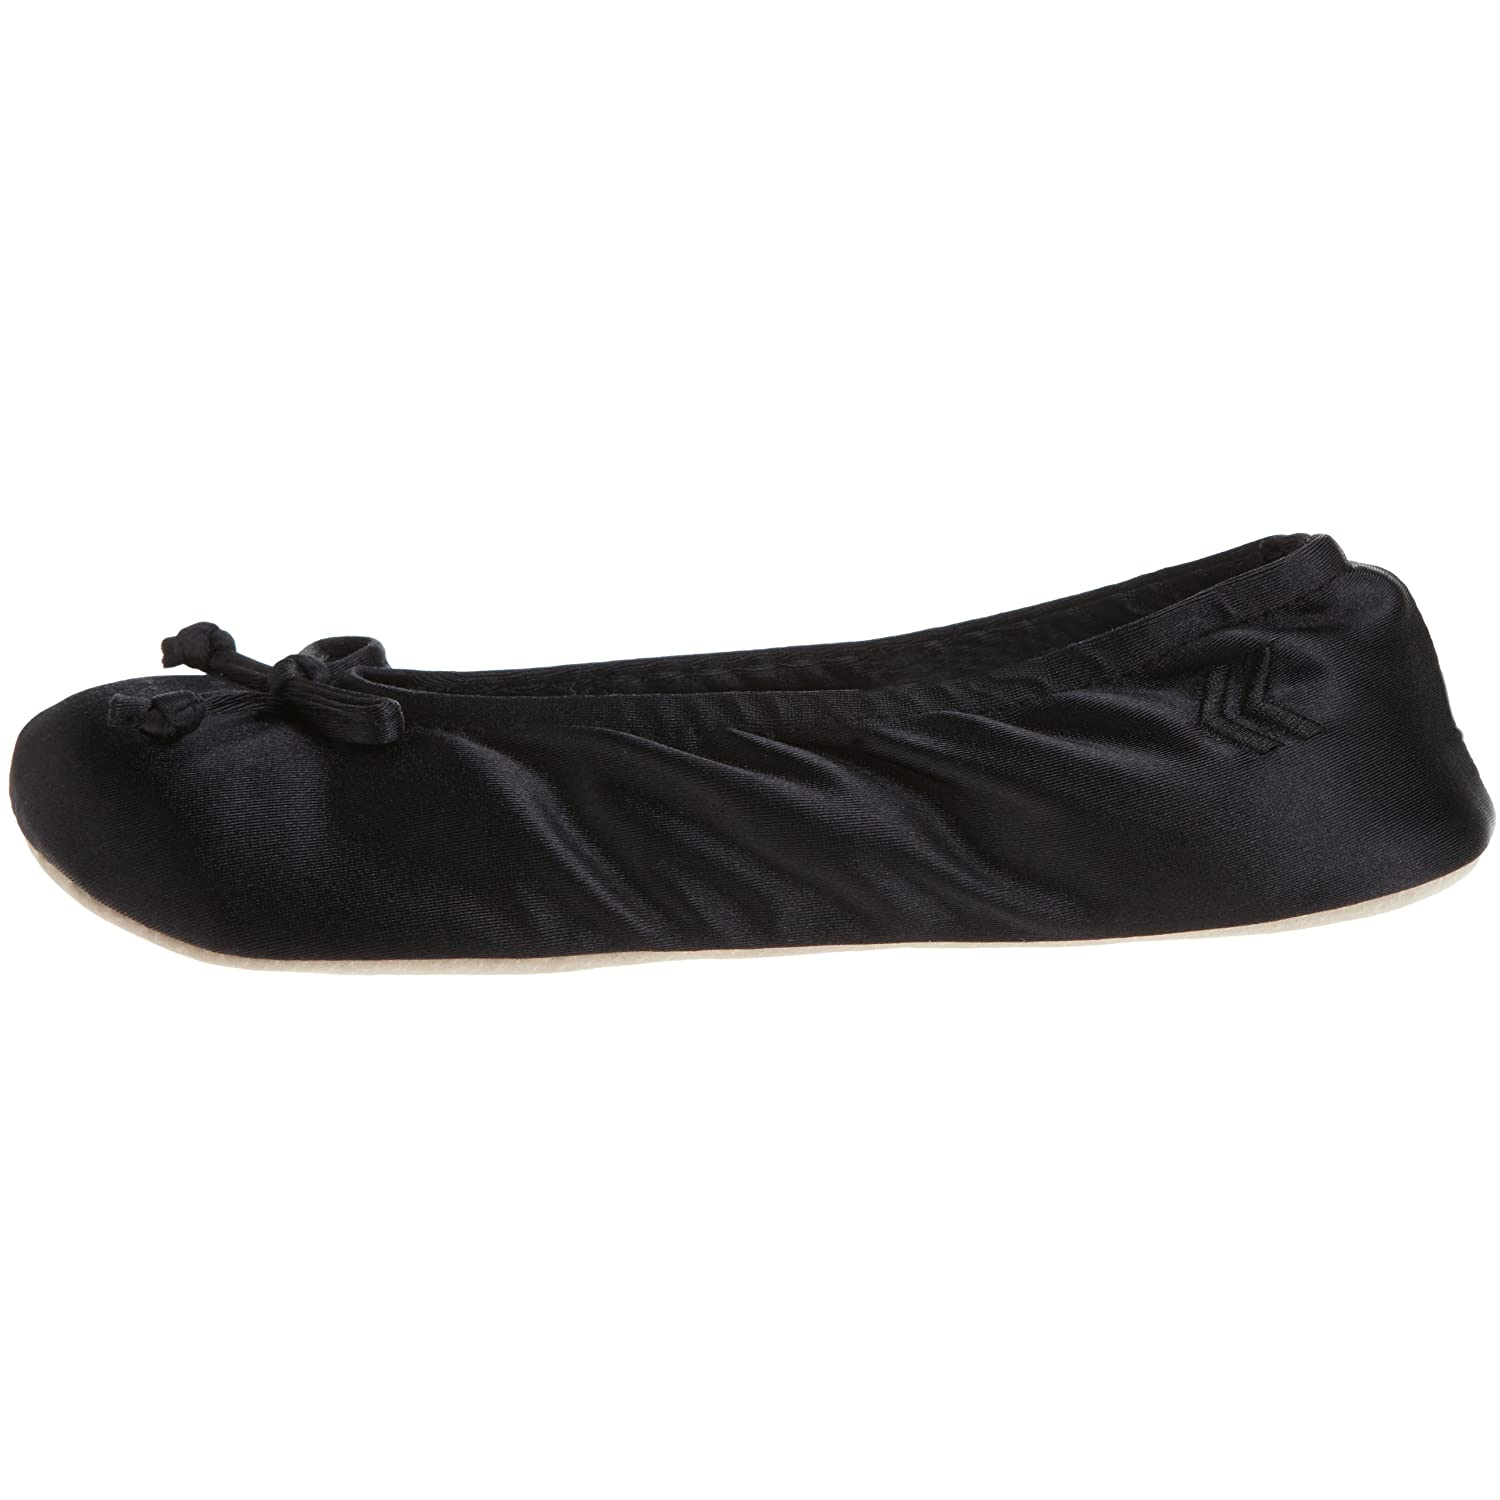 Deluxe Adult Costumes - Assassin's Creed Women's Black Isotoner Slipper